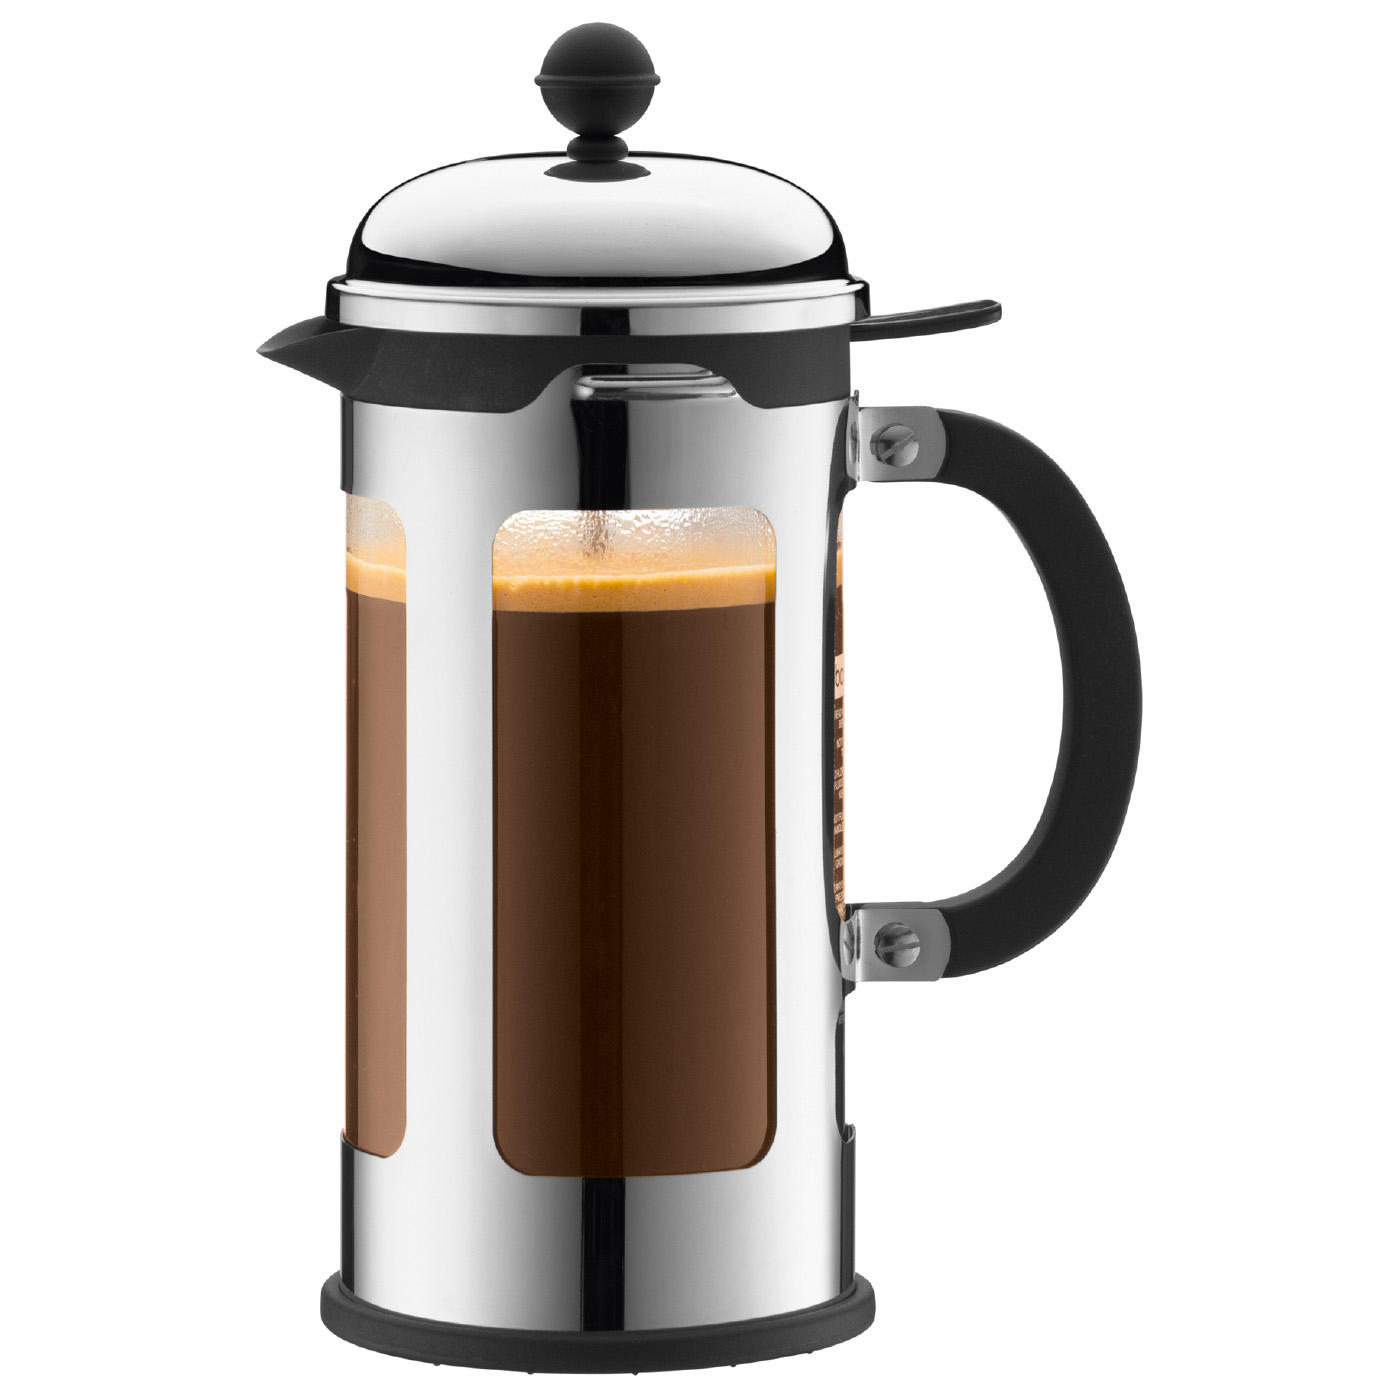 Bodum Tassen Bodum Chambord Coffee Maker 8 Cups 1 L Stainless Steel Shiny French Press 11172 16 At About Tea De Shop